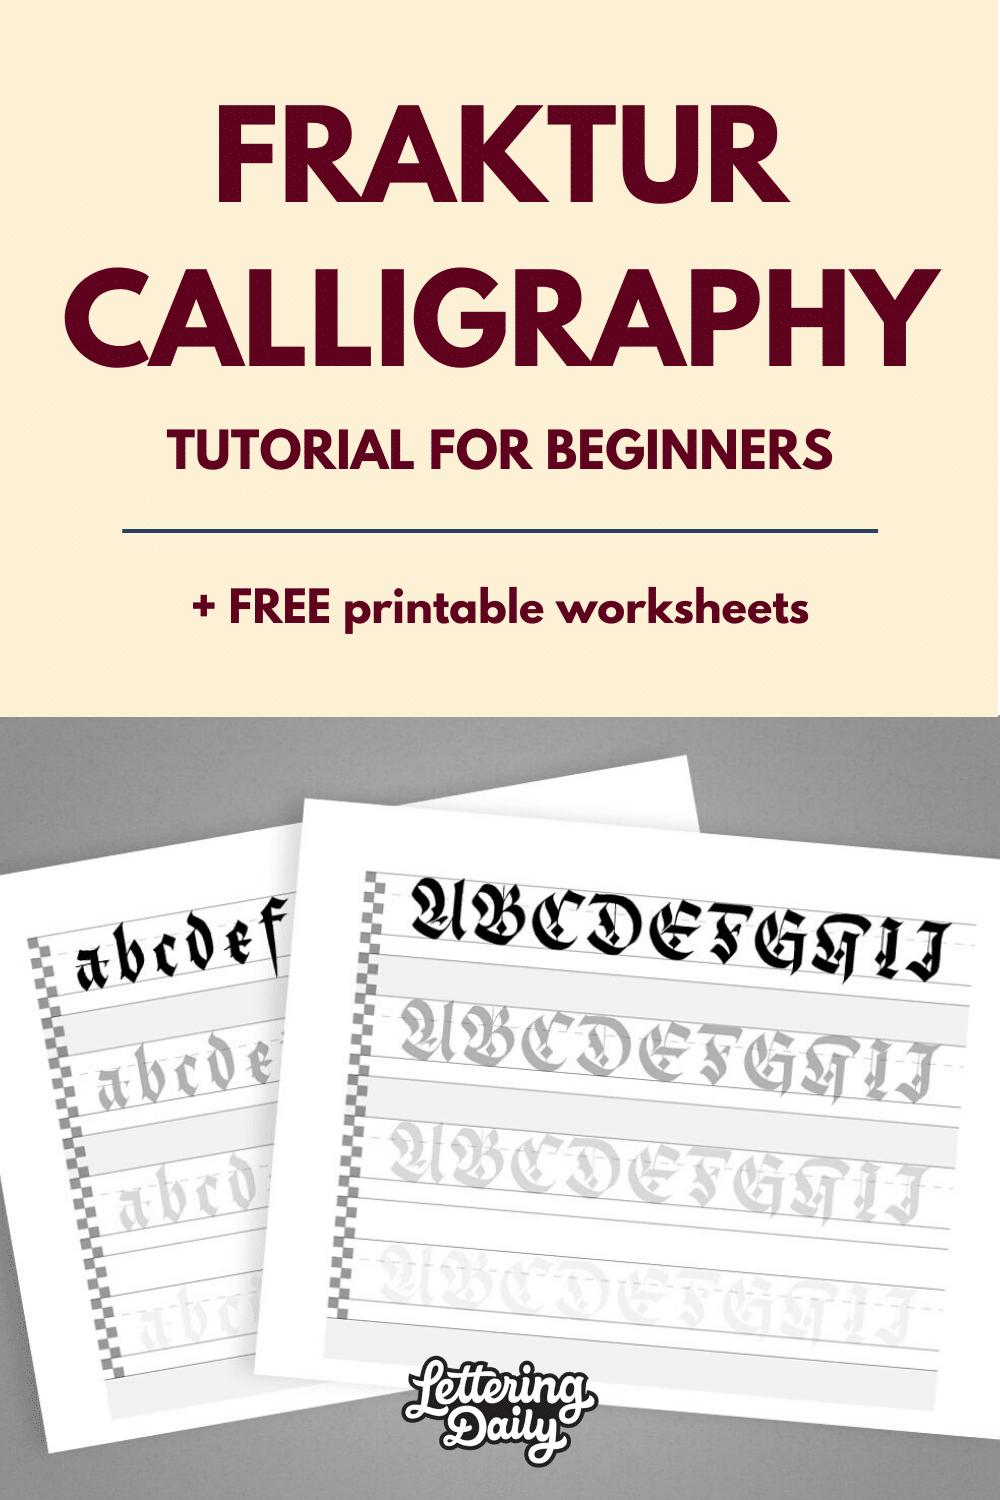 Fraktur Calligraphy for beginners - Lettering Daily